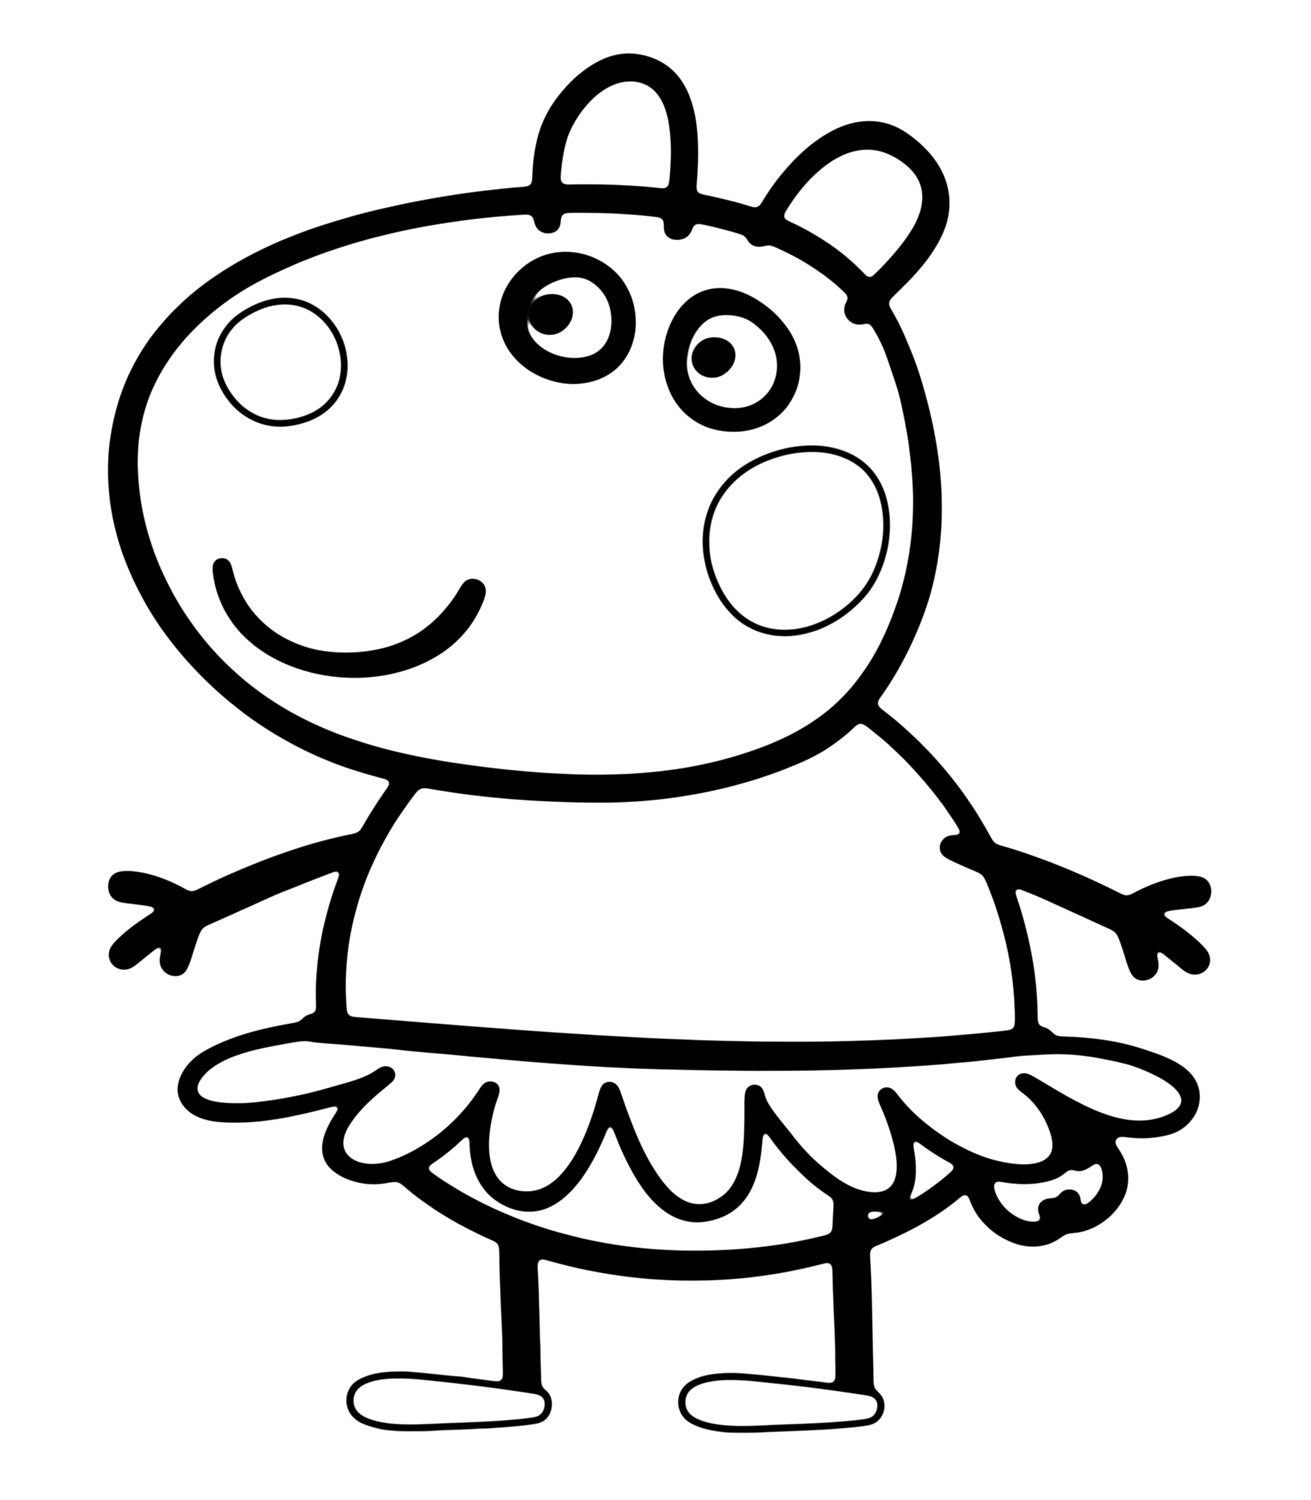 Luxury Peppa Pig Colouring Thevillageanthology Com In 2021 Peppa Pig Colouring Peppa Pig Coloring Pages Sheep Coloring Pages